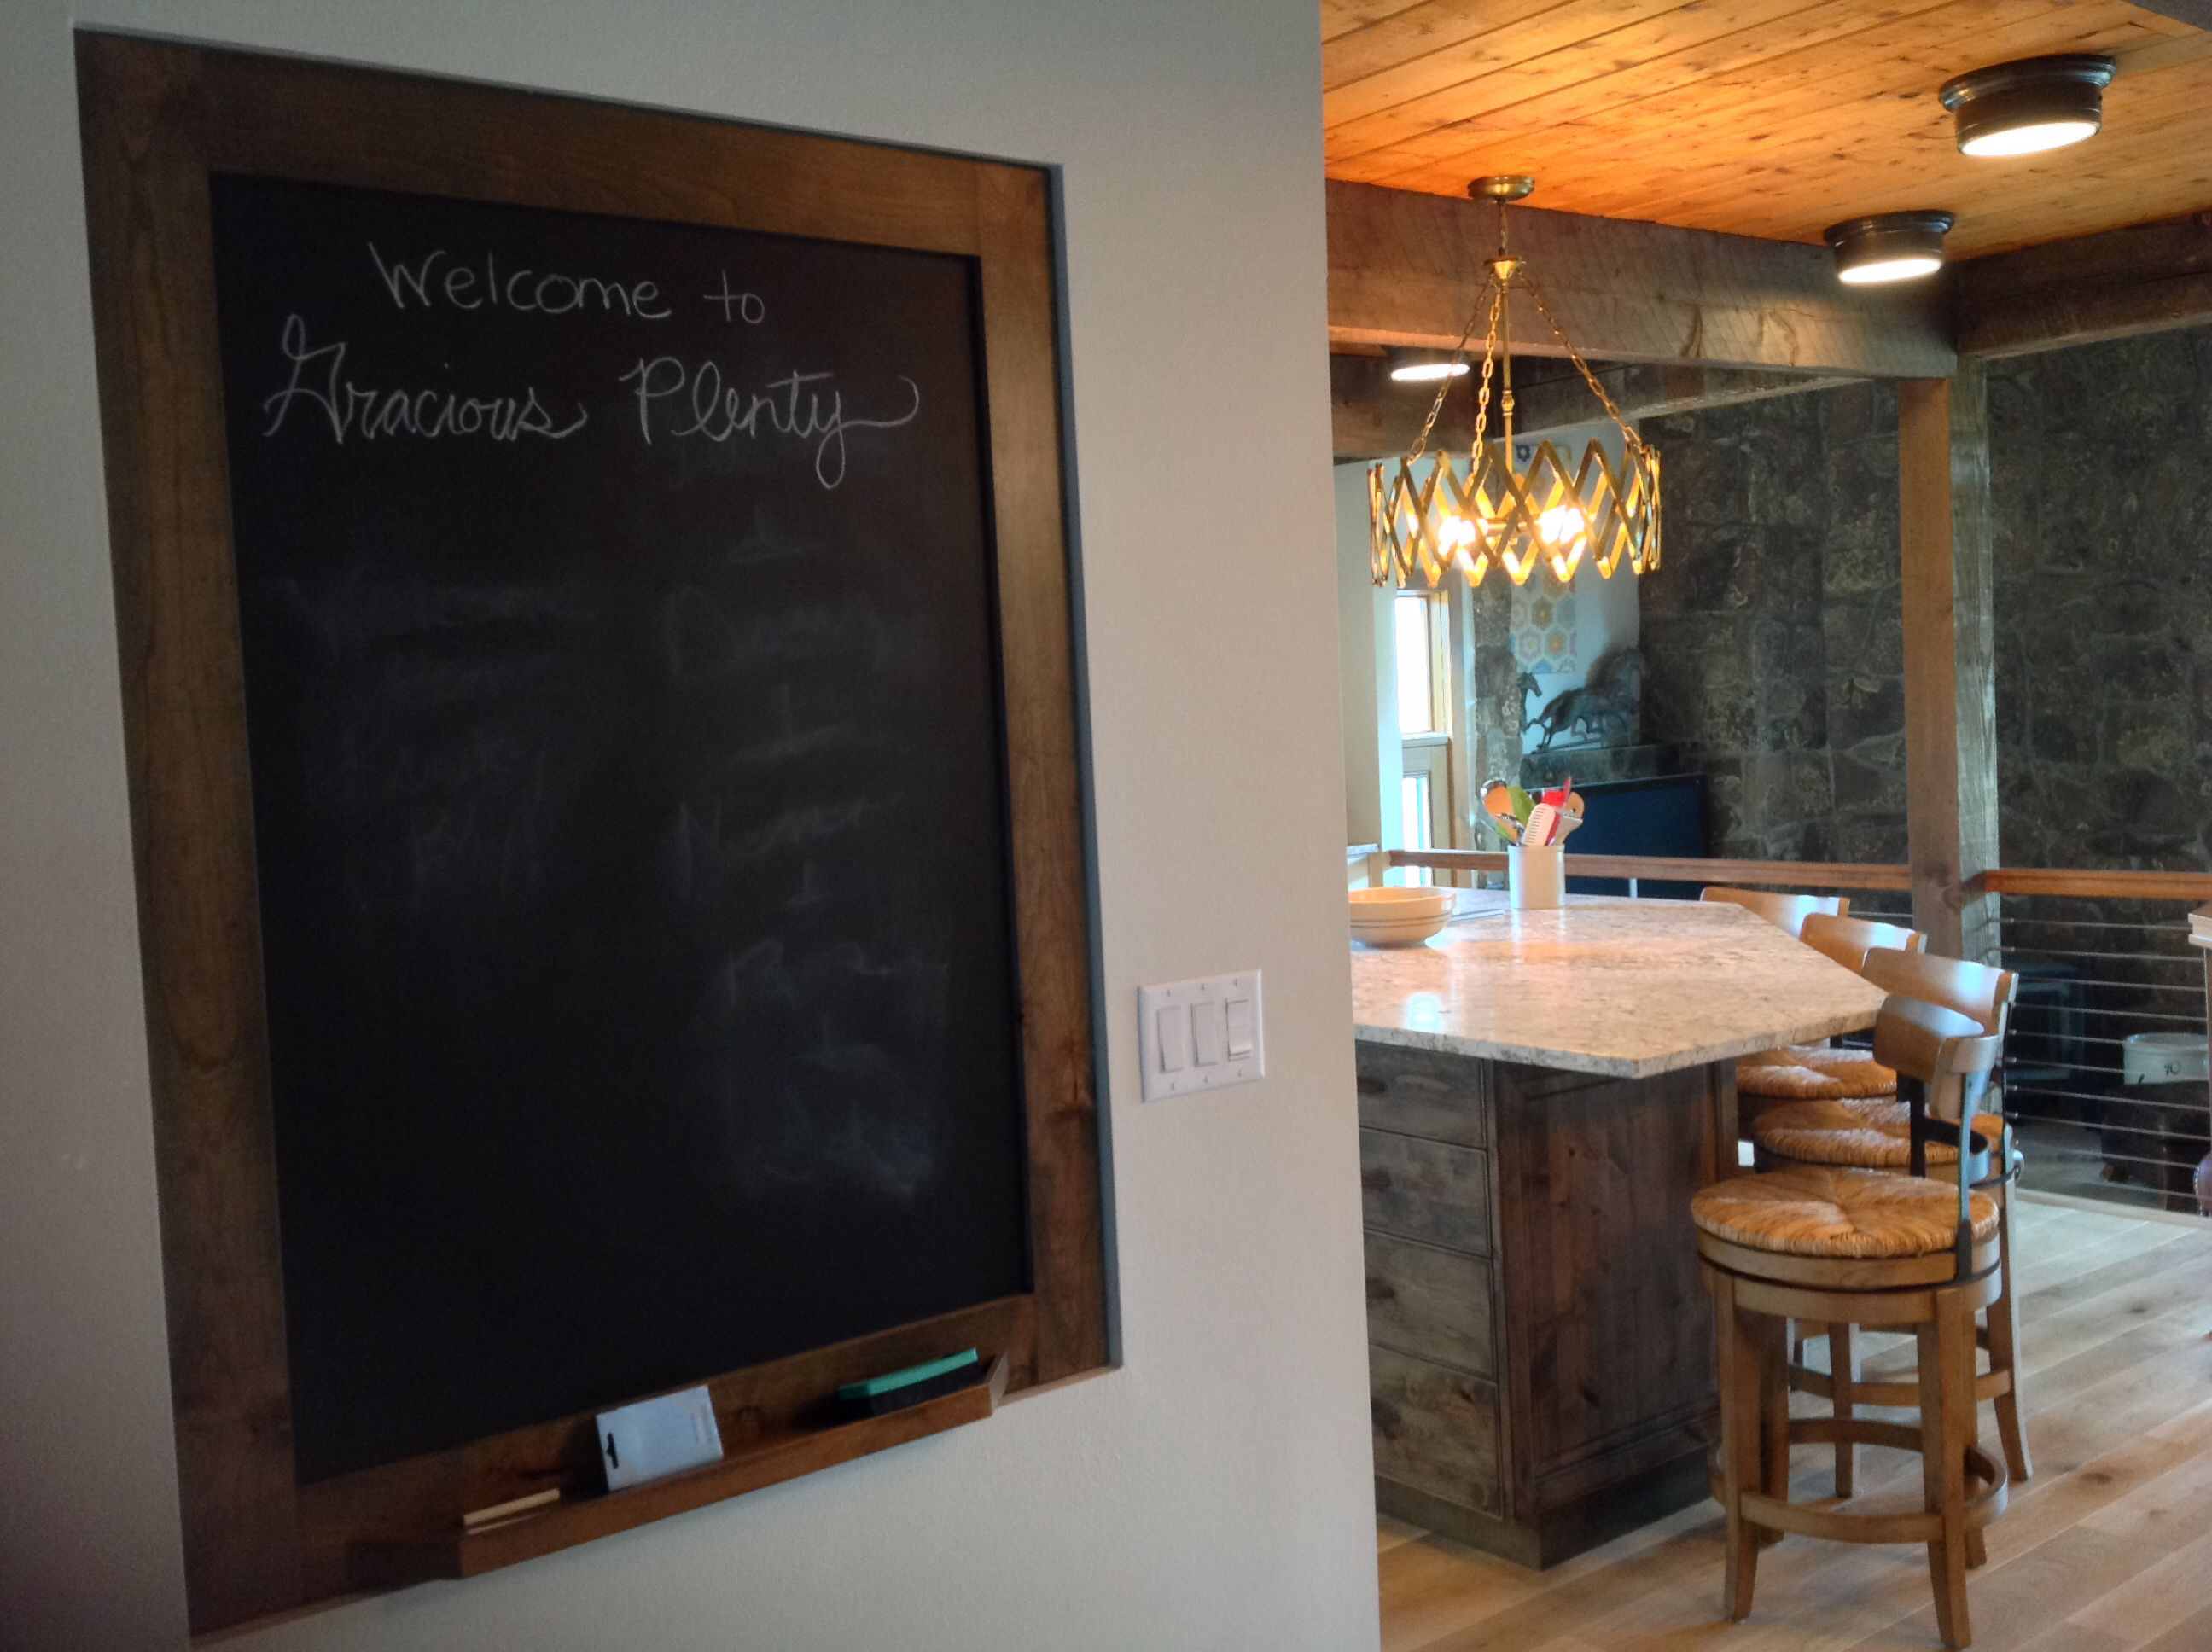 Chalkboard wall on the way to the kitchen